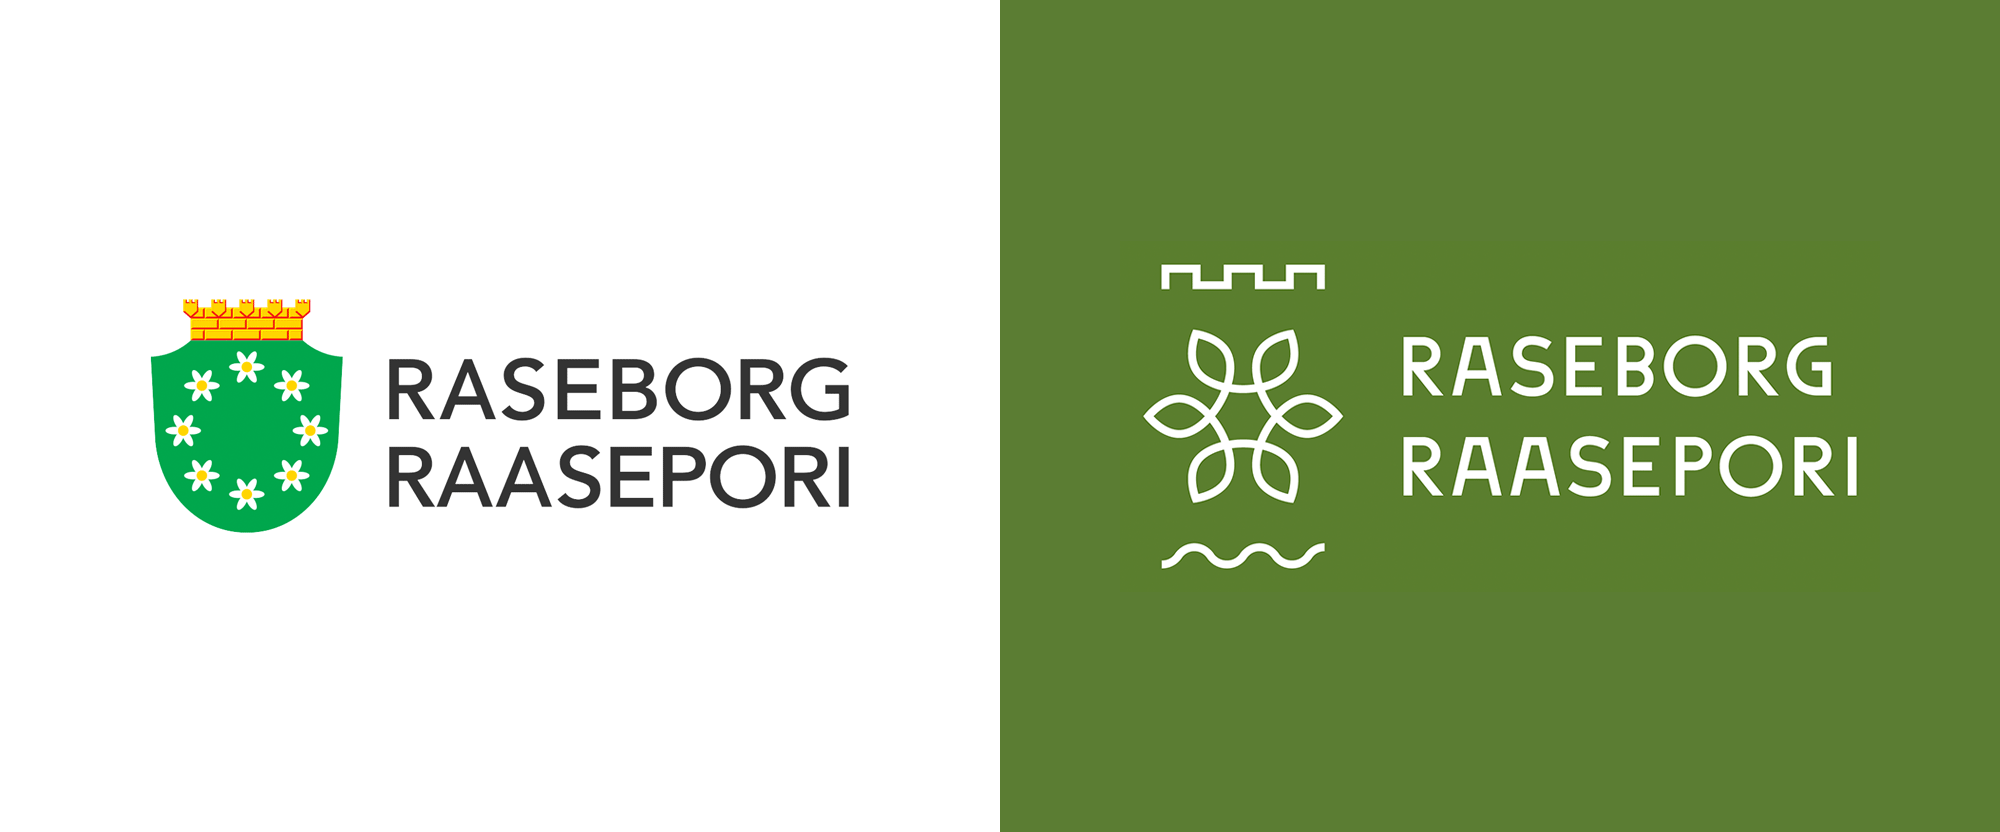 New Logo and Identity for Raseborg by Marker Creative